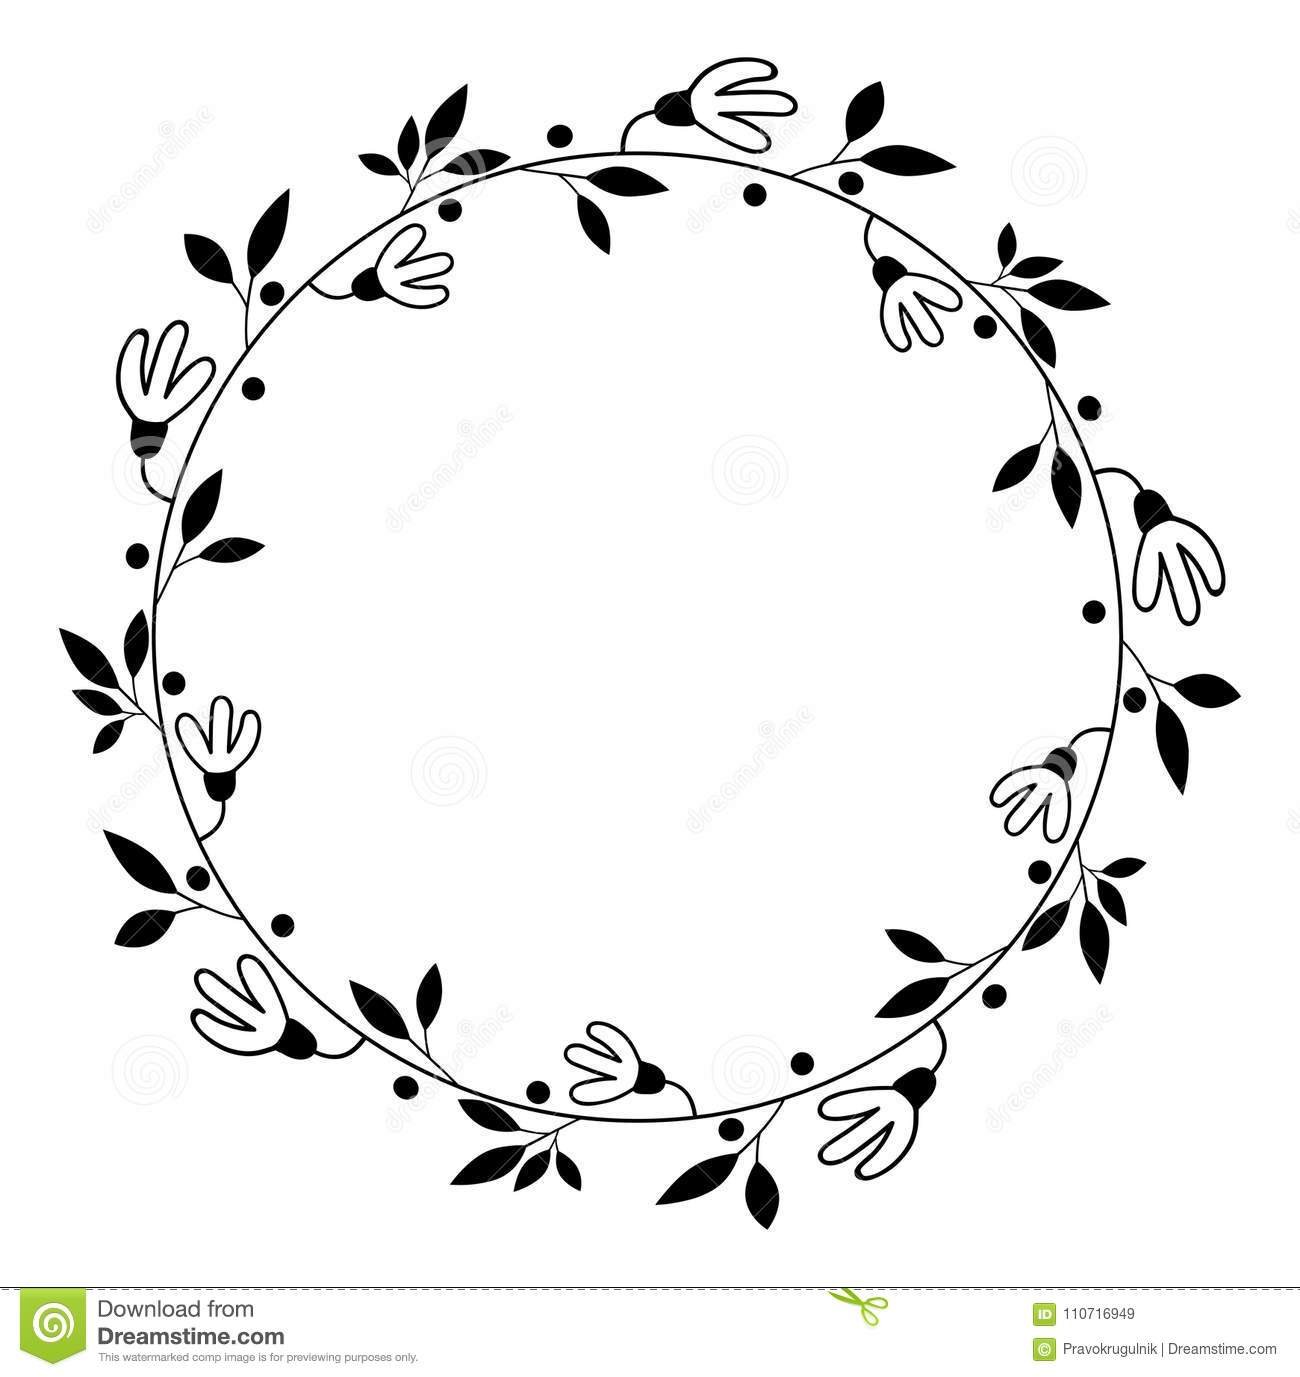 Black Flower Round Up: Round Vector Floral Wreath Border Stock Vector